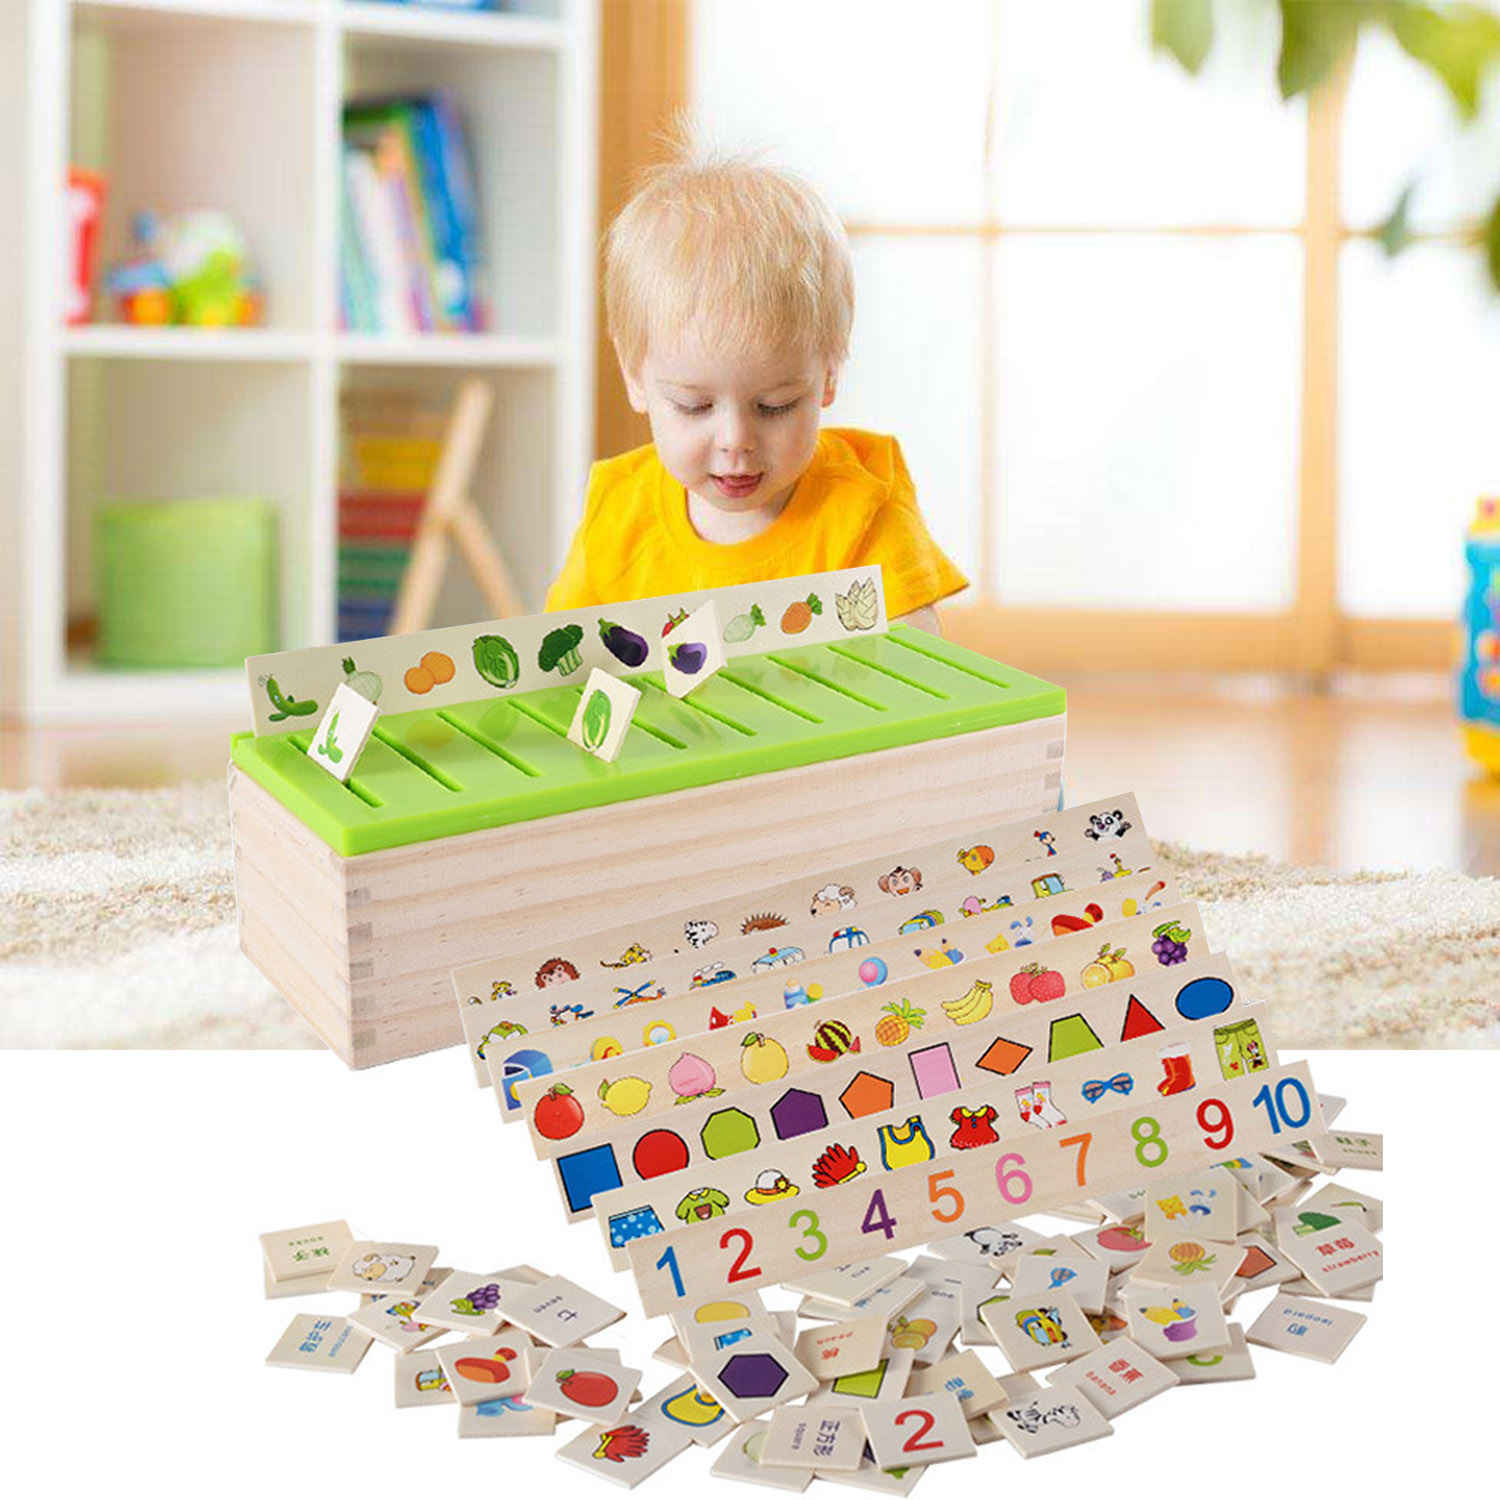 kids Knowledge Learning Shape Classification Box Toy Wooden Puzzle Matching